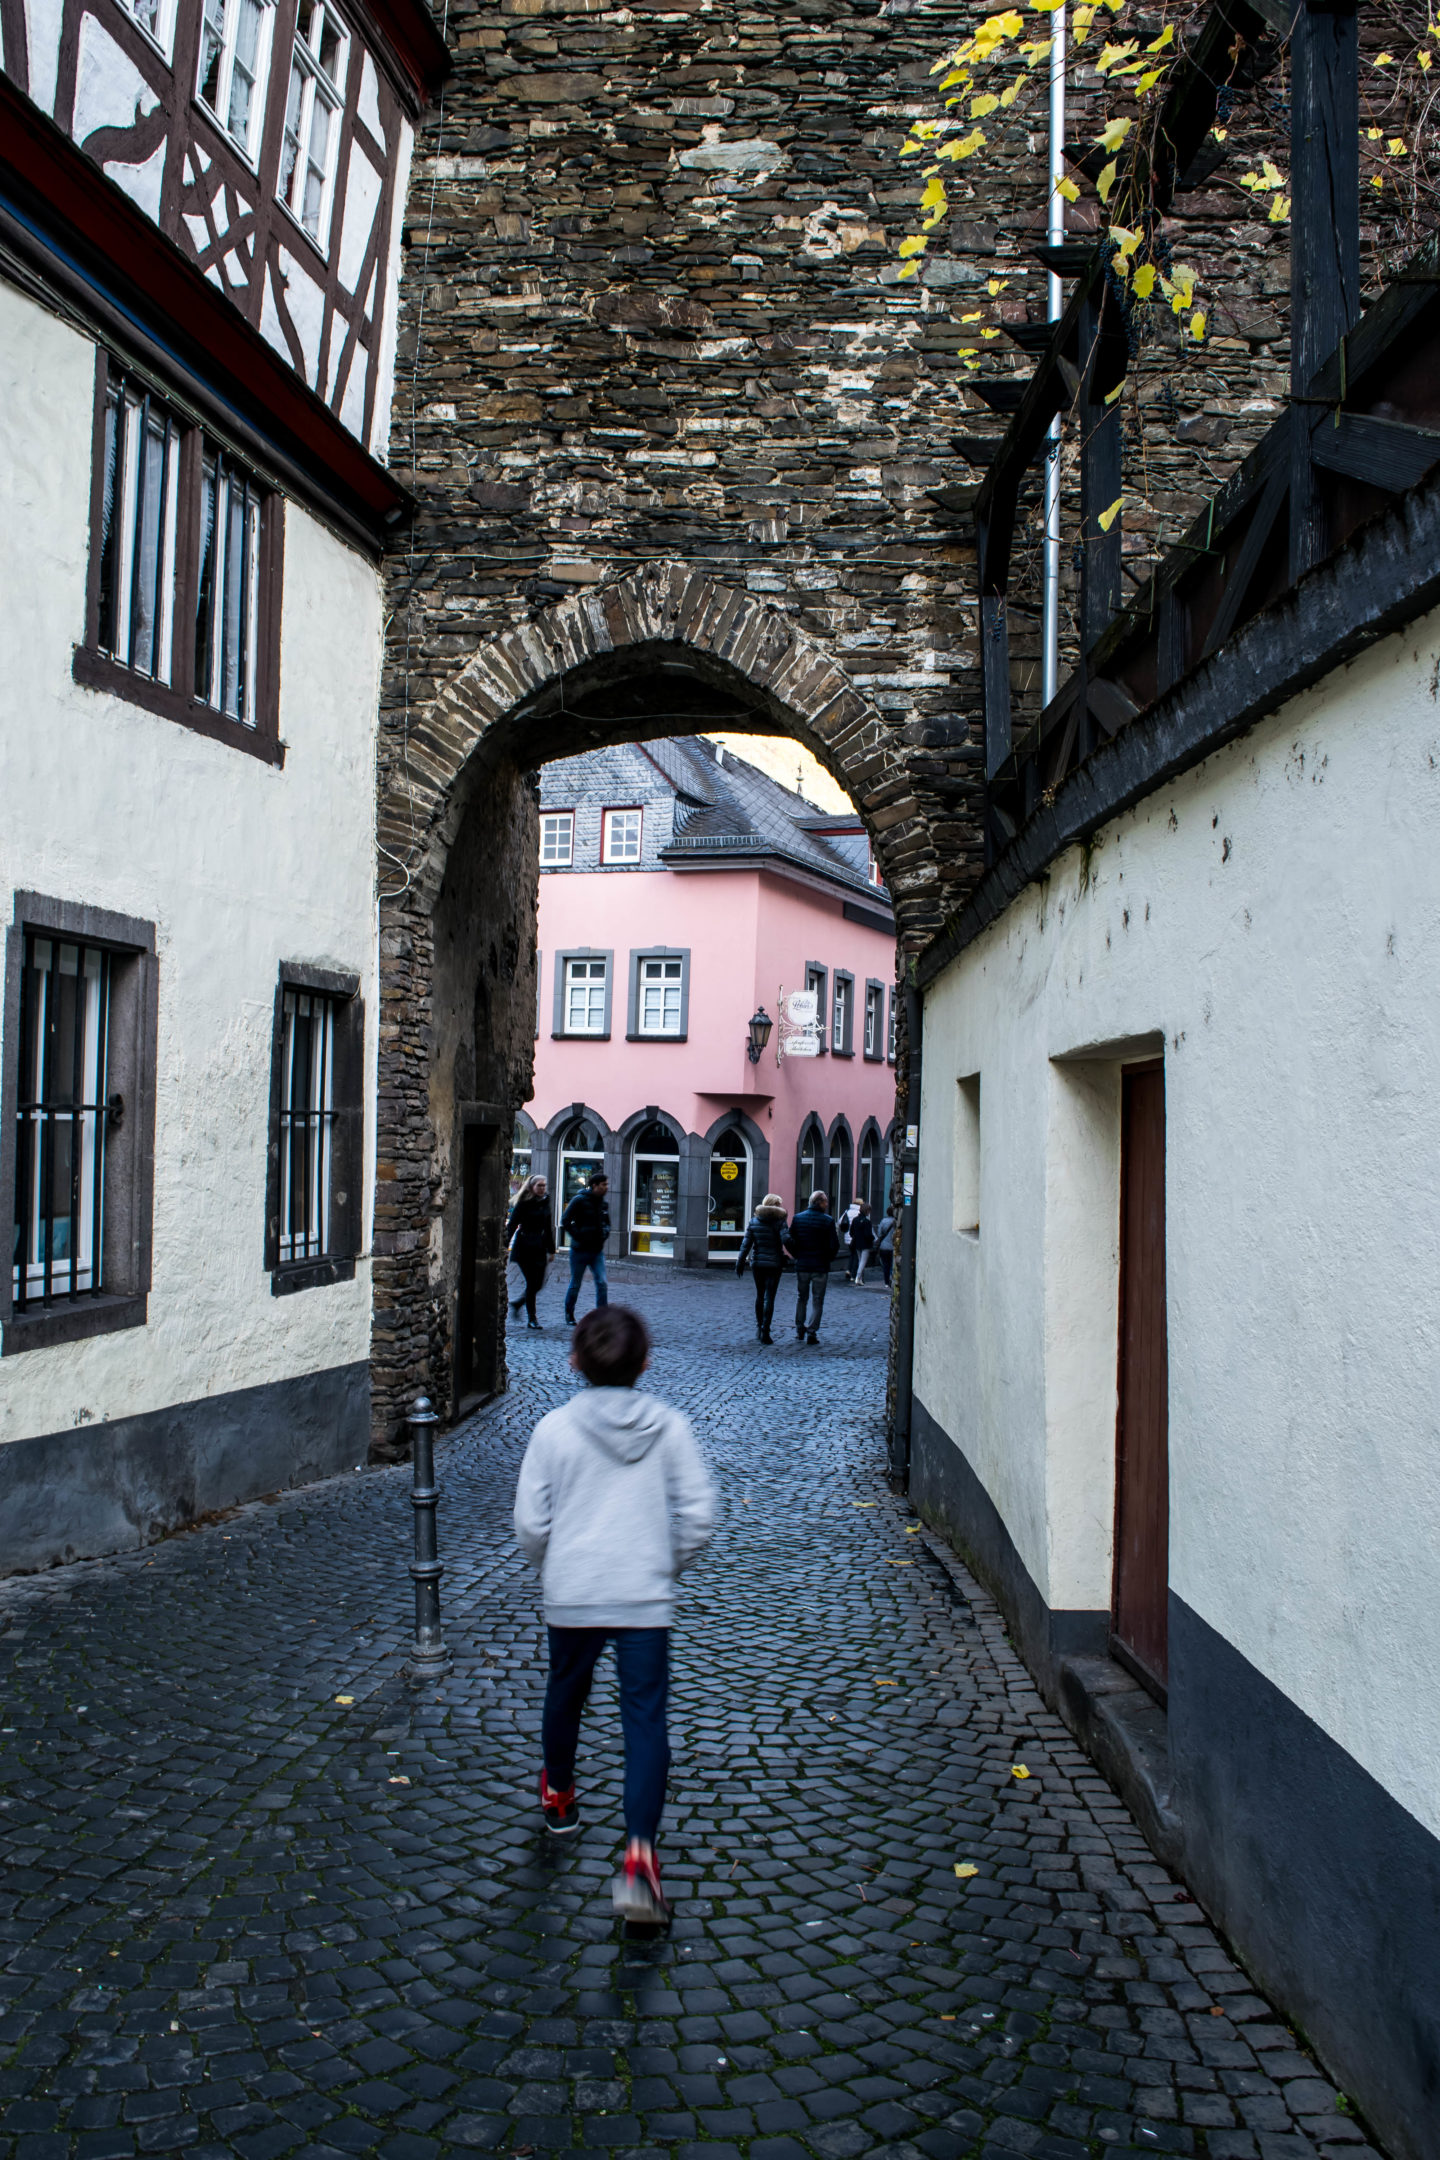 Exploring the town of Cochem on foot